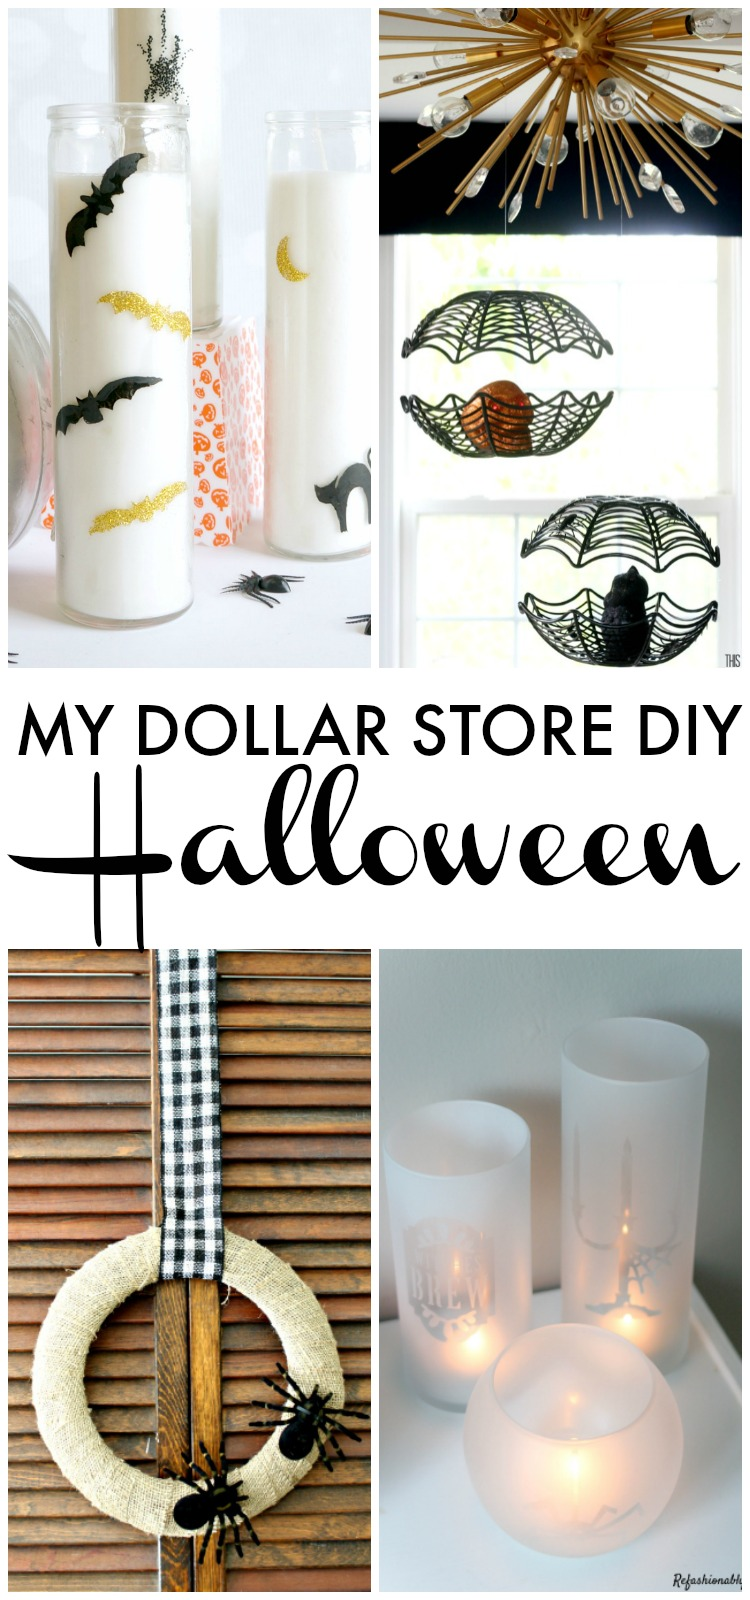 My Dollar Store DIY - Halloween projects using Dollar Store supplies